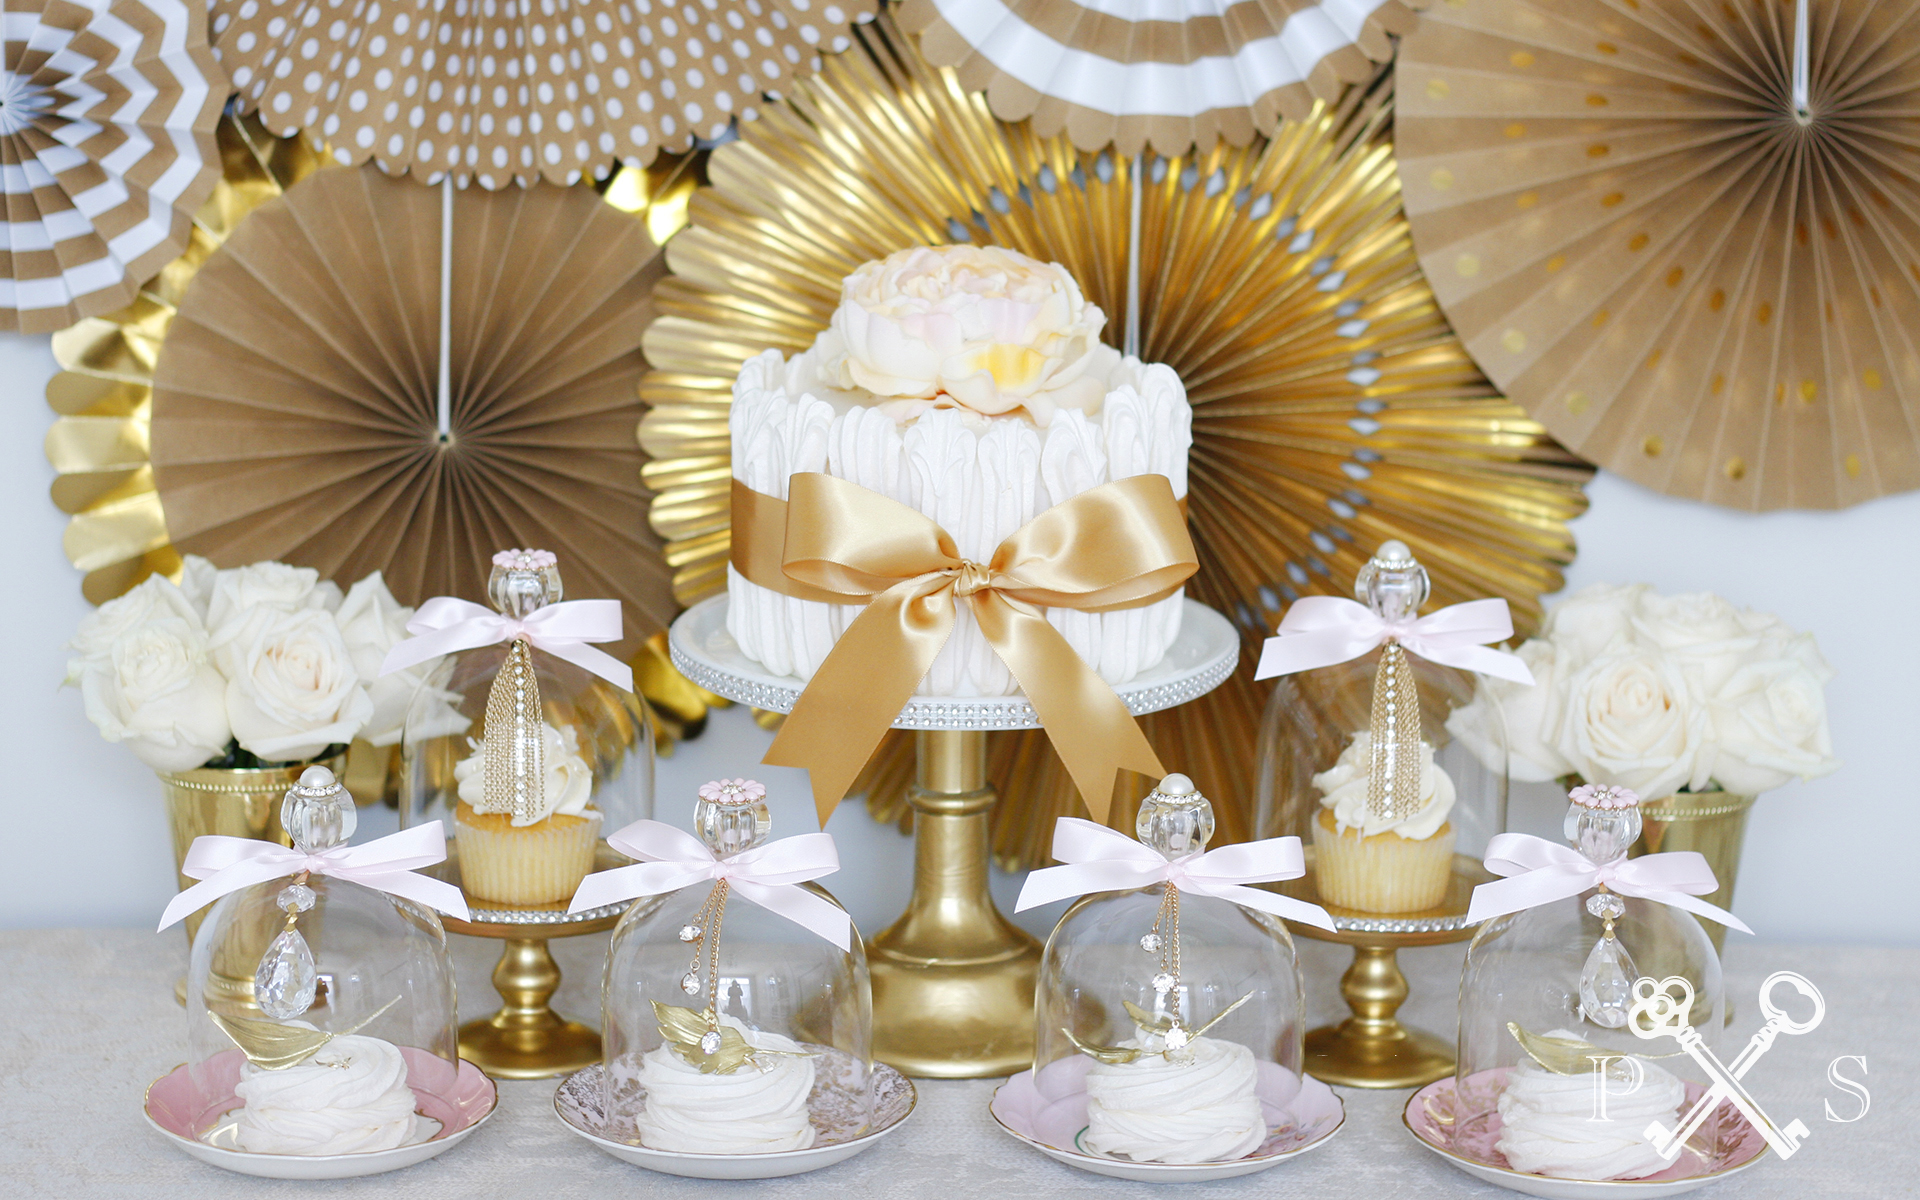 Mini Dessert Dome Table